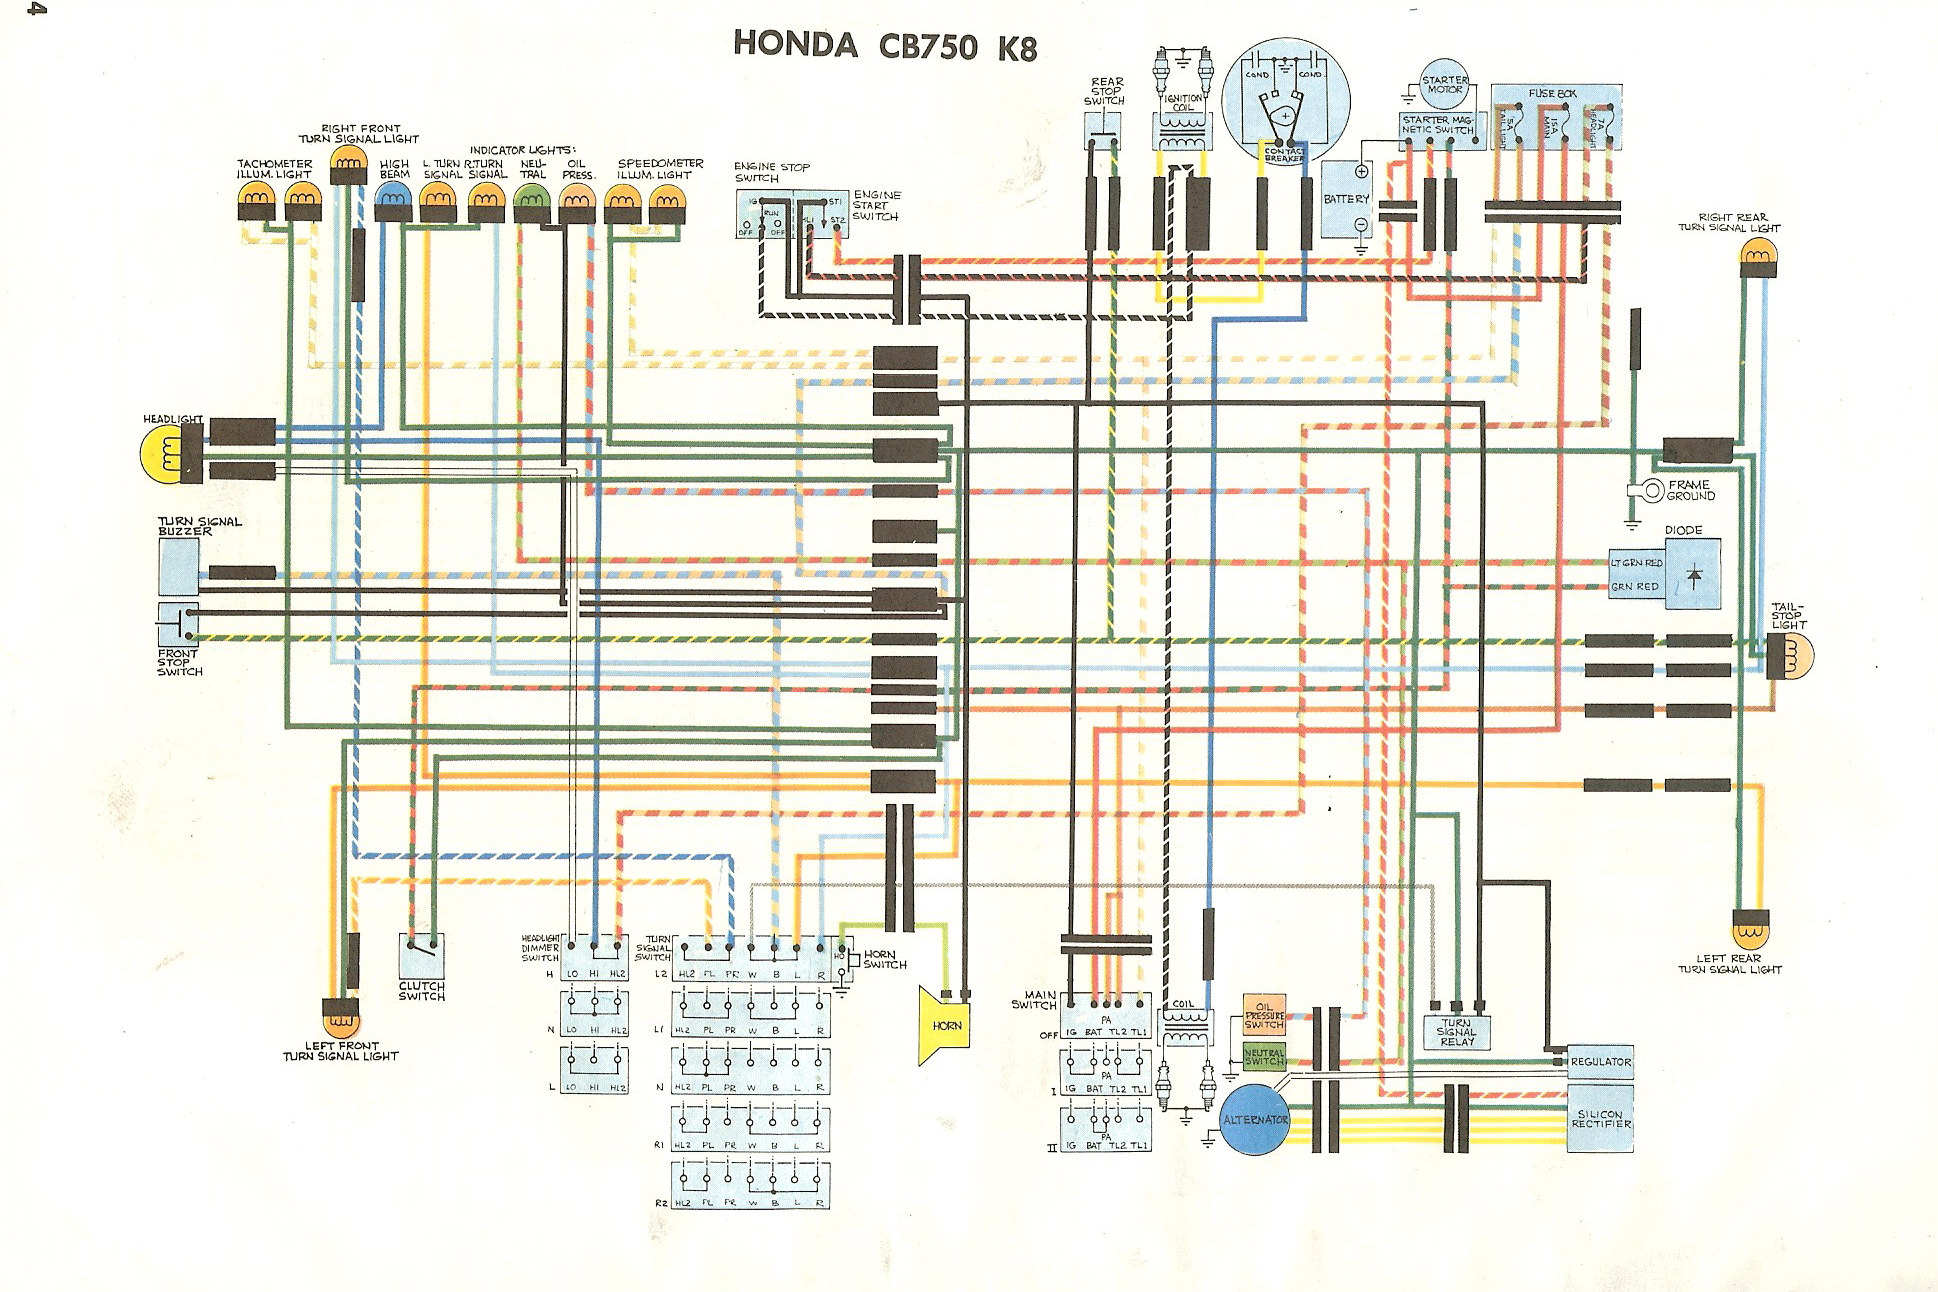 WD750K8 1978 honda cb750 wiring diagram honda cb 700 ignition wire diagram 1976 cb550f wiring diagram at webbmarketing.co